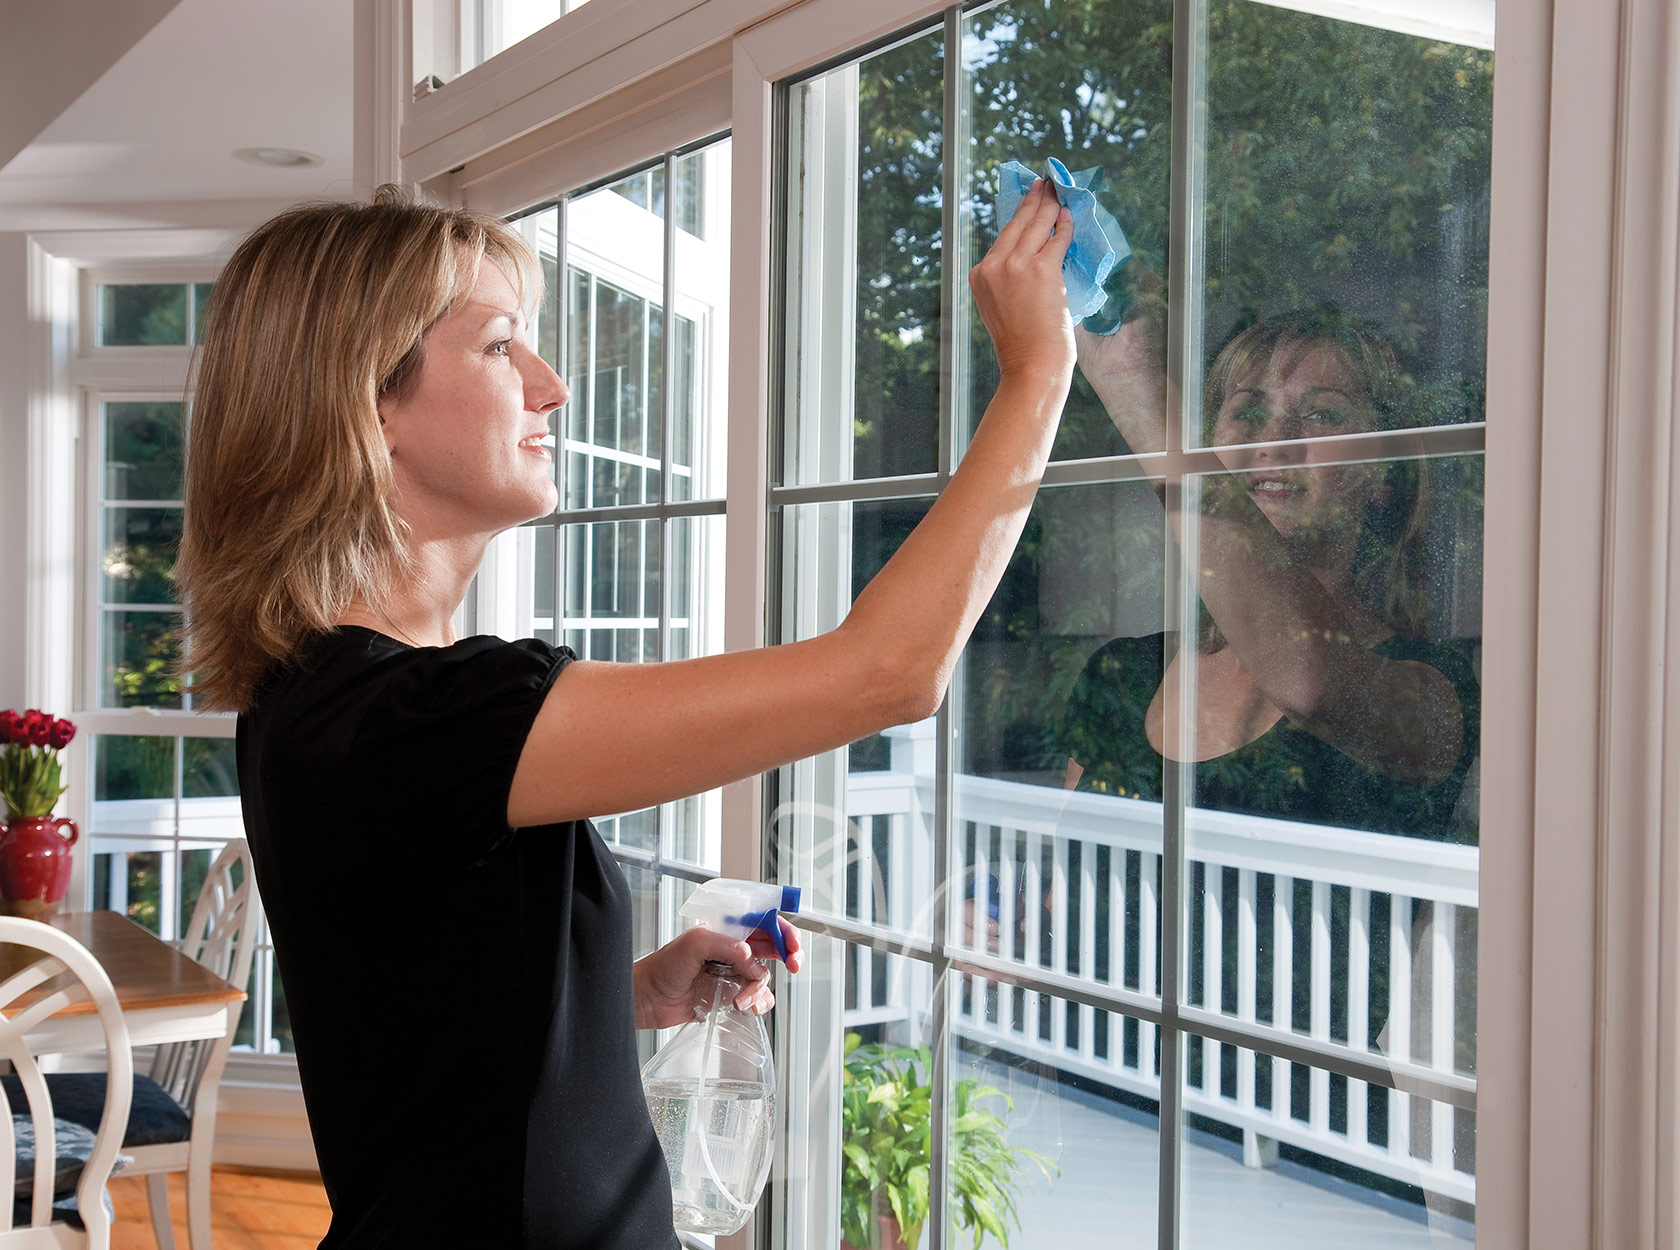 A Guide To The Parts Of A Window